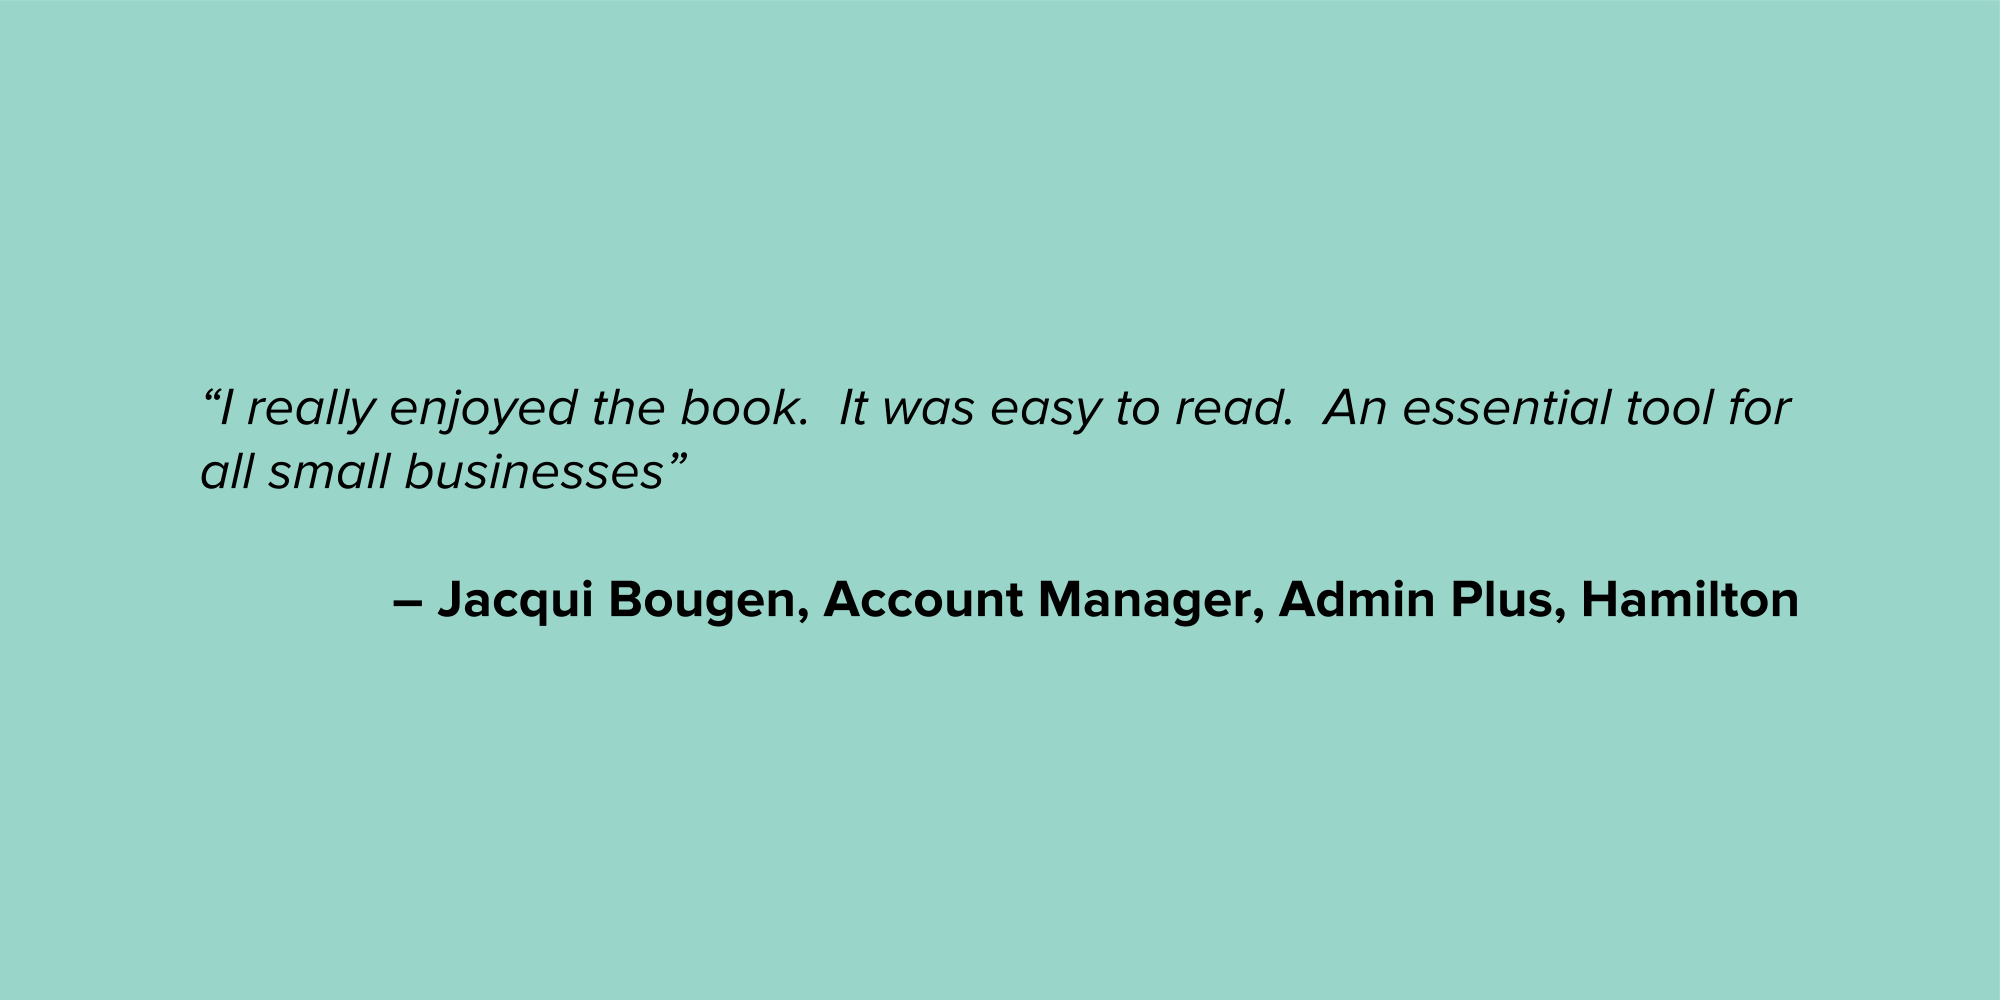 Jacqui Bougen Micro Business Testimonial Quote